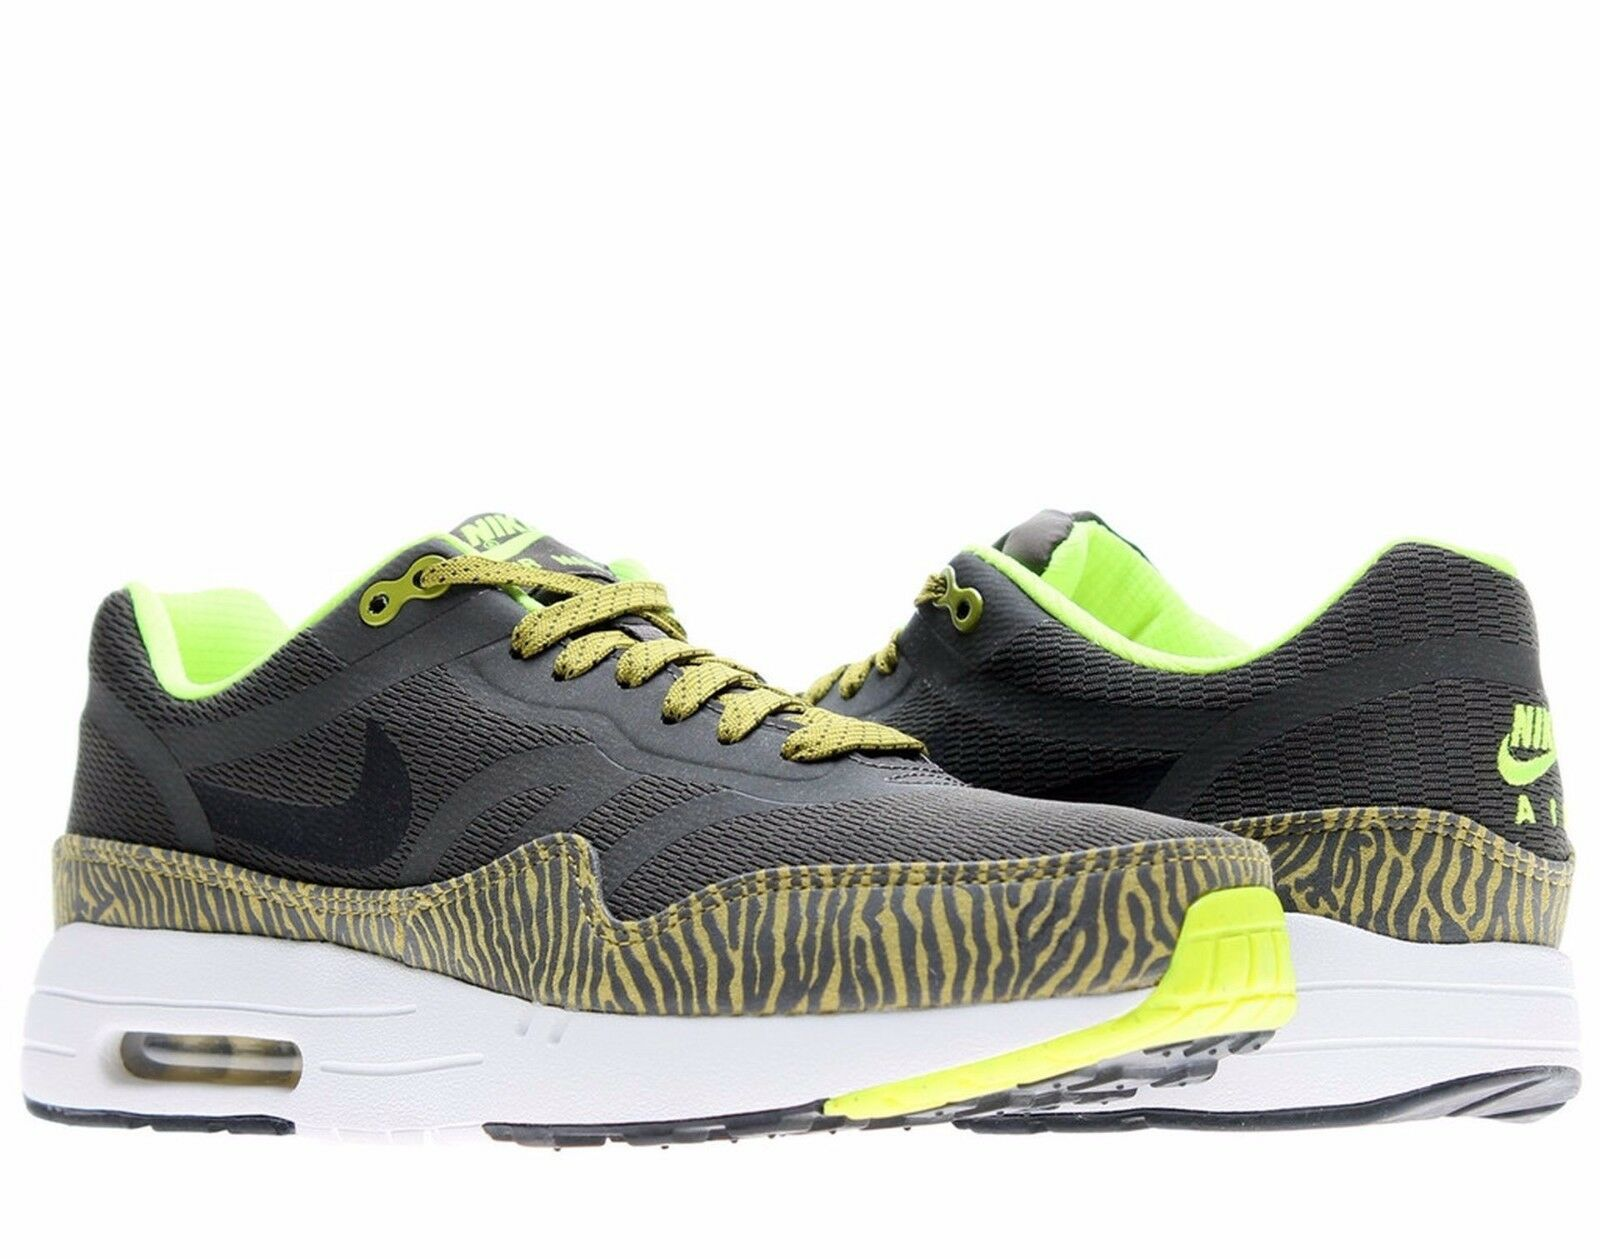 Nike Air Max 1 PRM TAPE Mens Sz 9.5 Black/Parachute Gold 599514-007 best-selling model of the brand